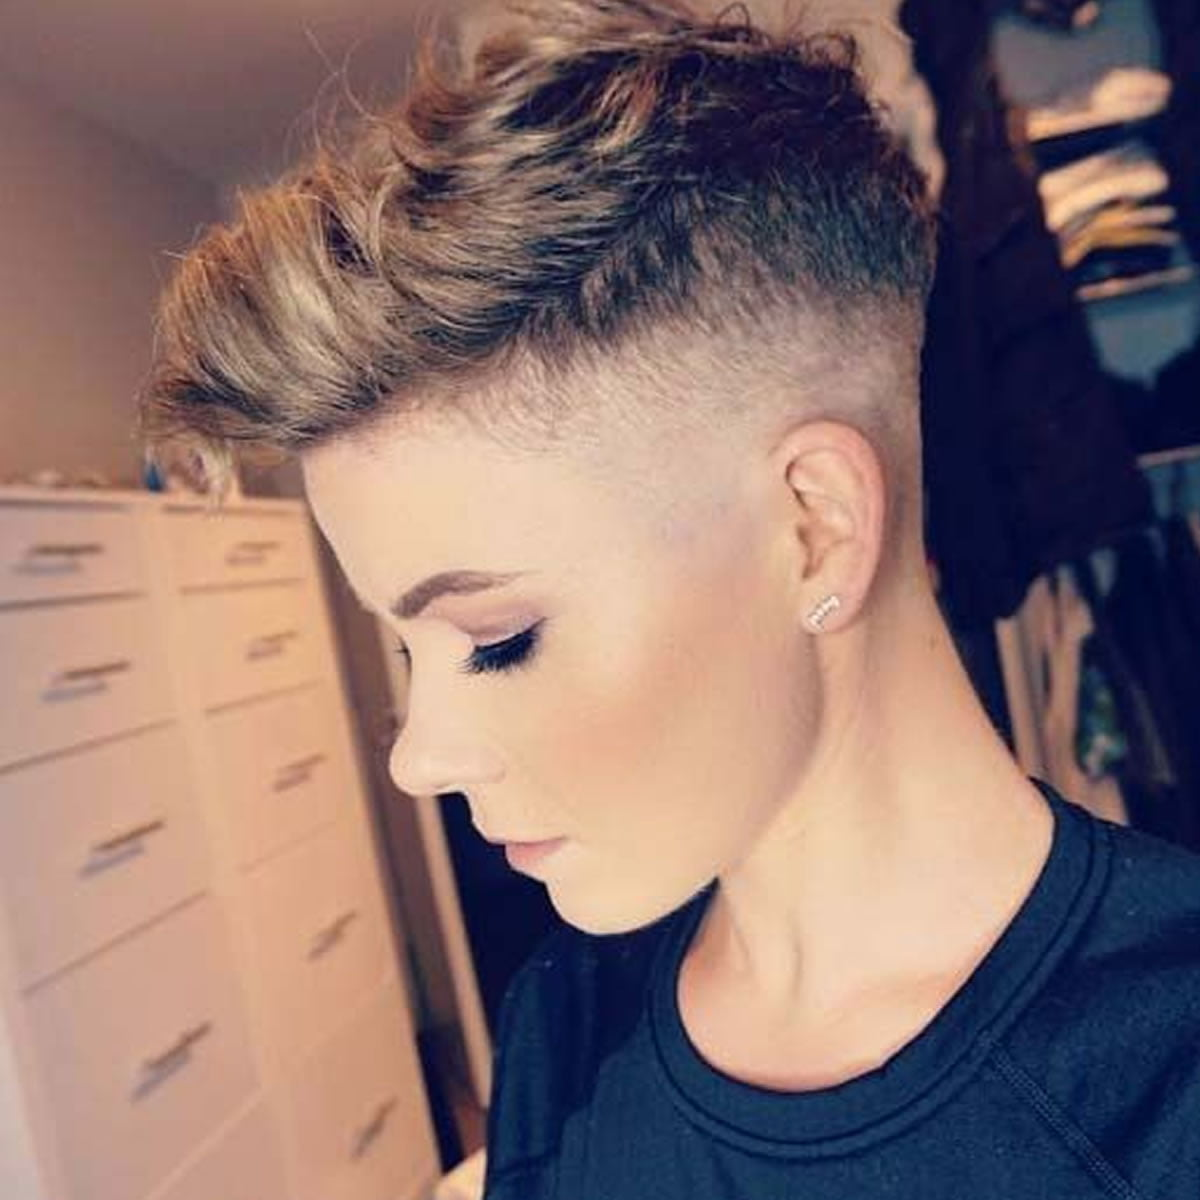 30 Glowing Undercut Short Hairstyles For Women Hairstyles